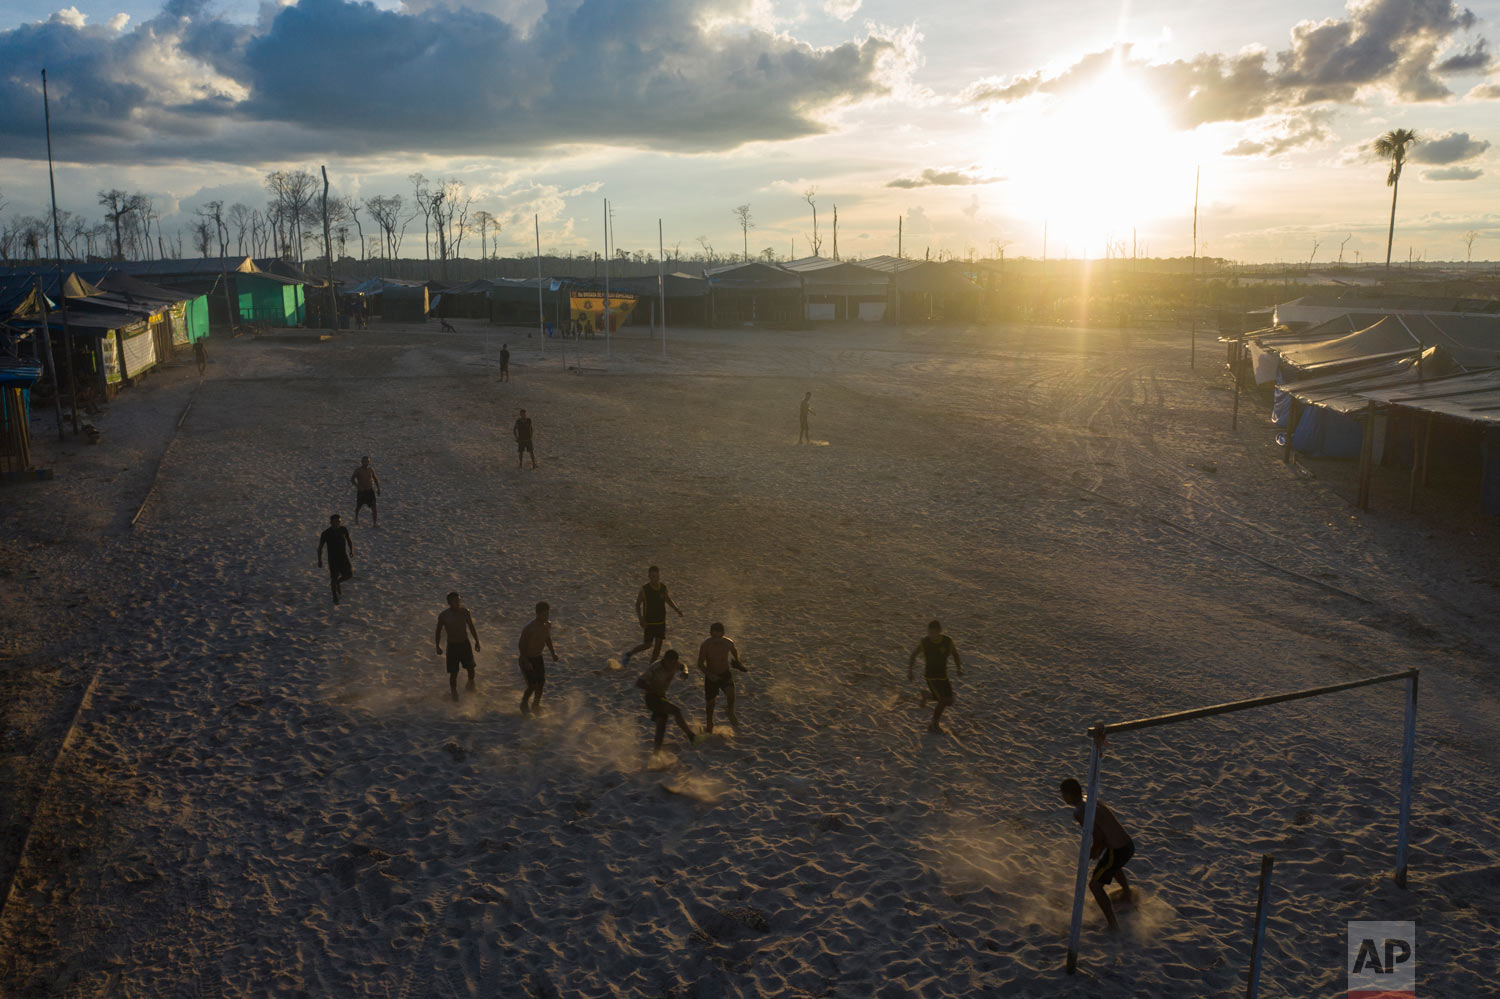 """Operation Mercury"" soldiers play soccer at the Balata police and military base, March 31, 2019, in Peru's Tambopata province. As night falls, they play cards, watch television and call family from their remote outpost. (AP Photo/Rodrigo Abd)"